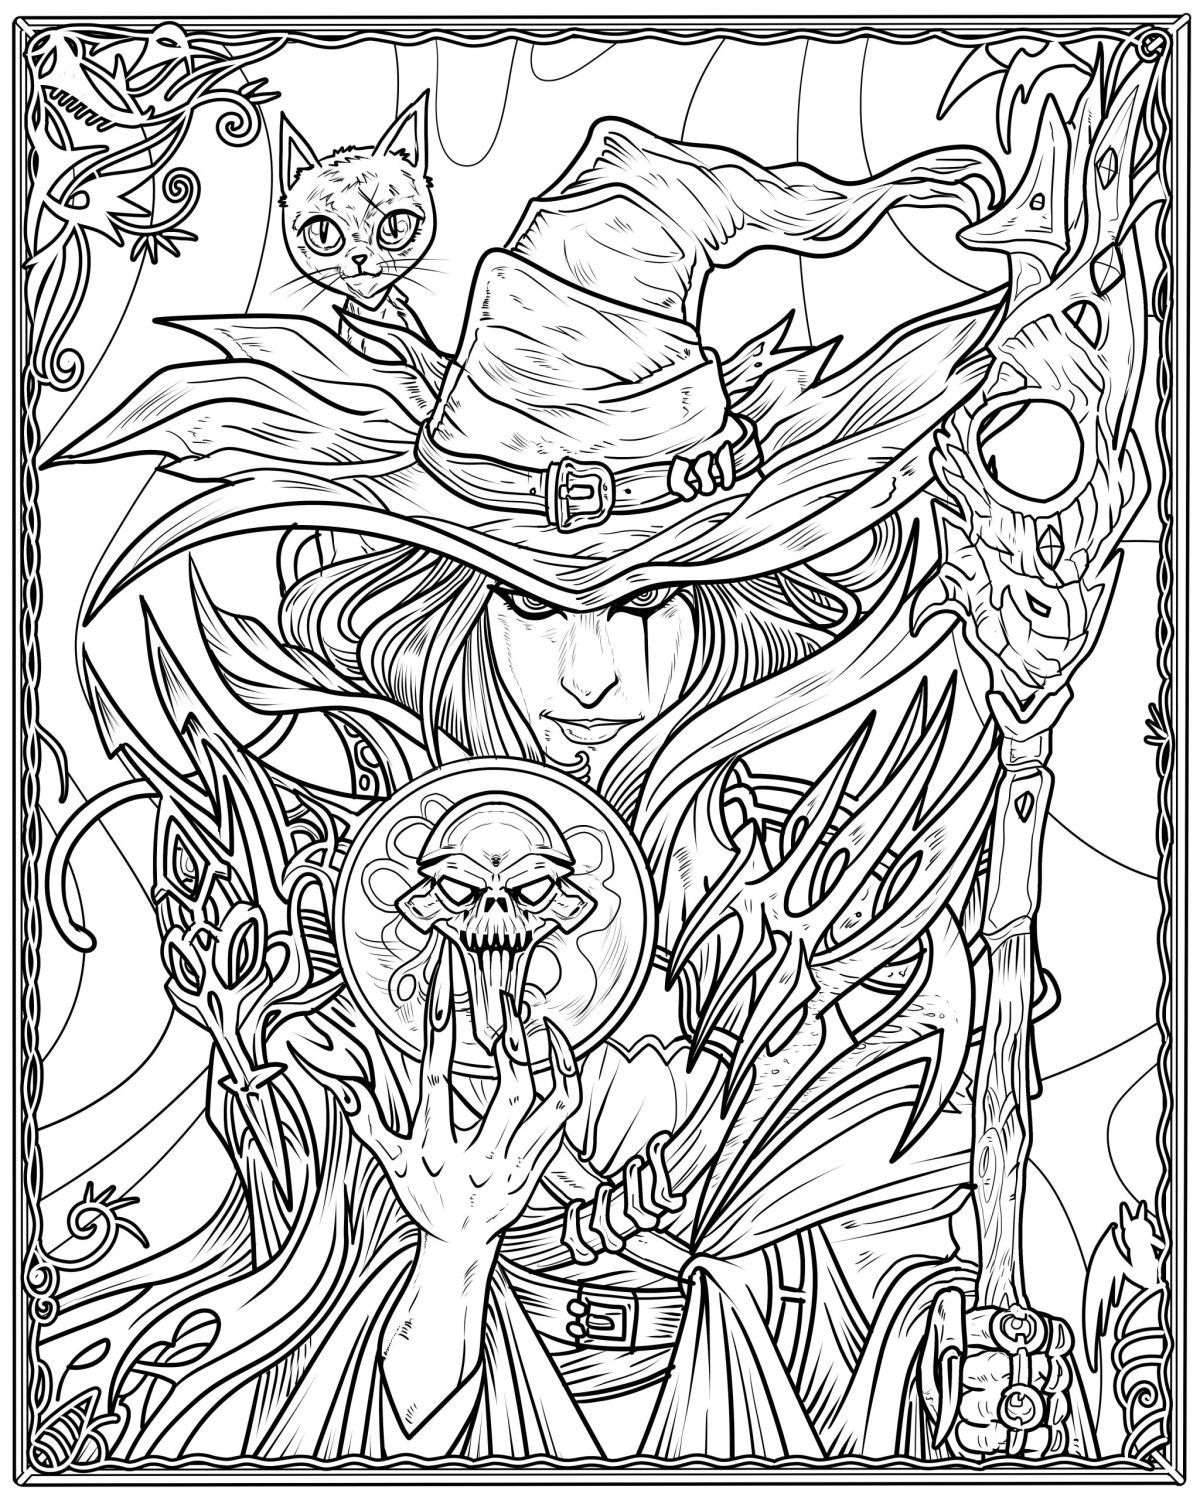 Witch Coloring Page Arts Crafts And Diy Cool Witch Coloring Pages Cool Coloring Pages Halloween Coloring Pages